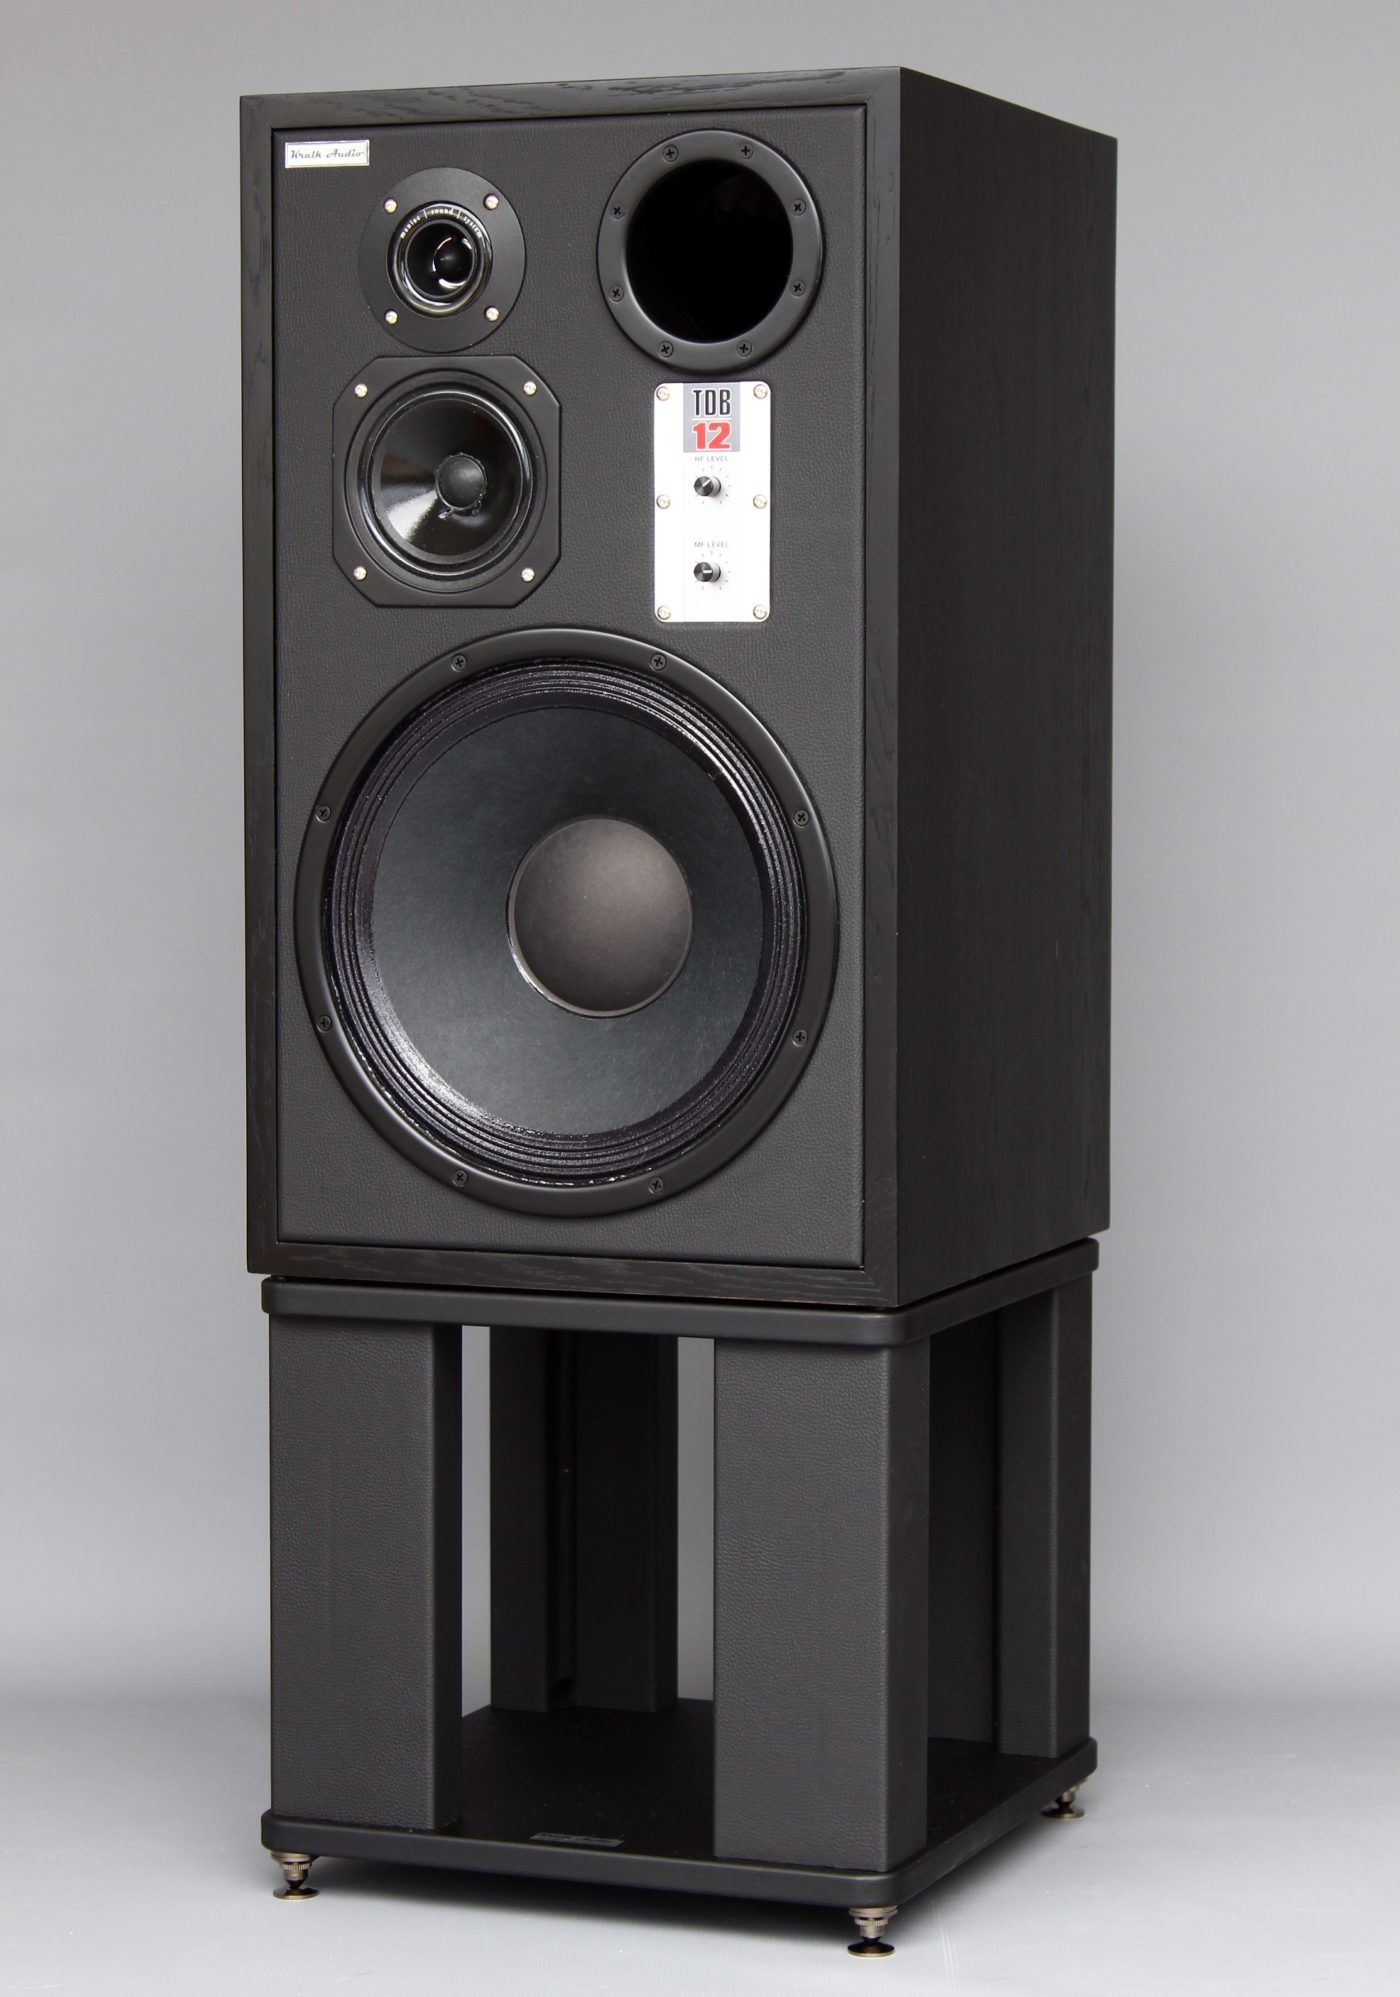 Kralk Audio Tdb 12 Professional 3 Way Studio Monitor Kralk Audio Loudspeakers Pro Audio Speakers Loudspeaker Studio Monitors